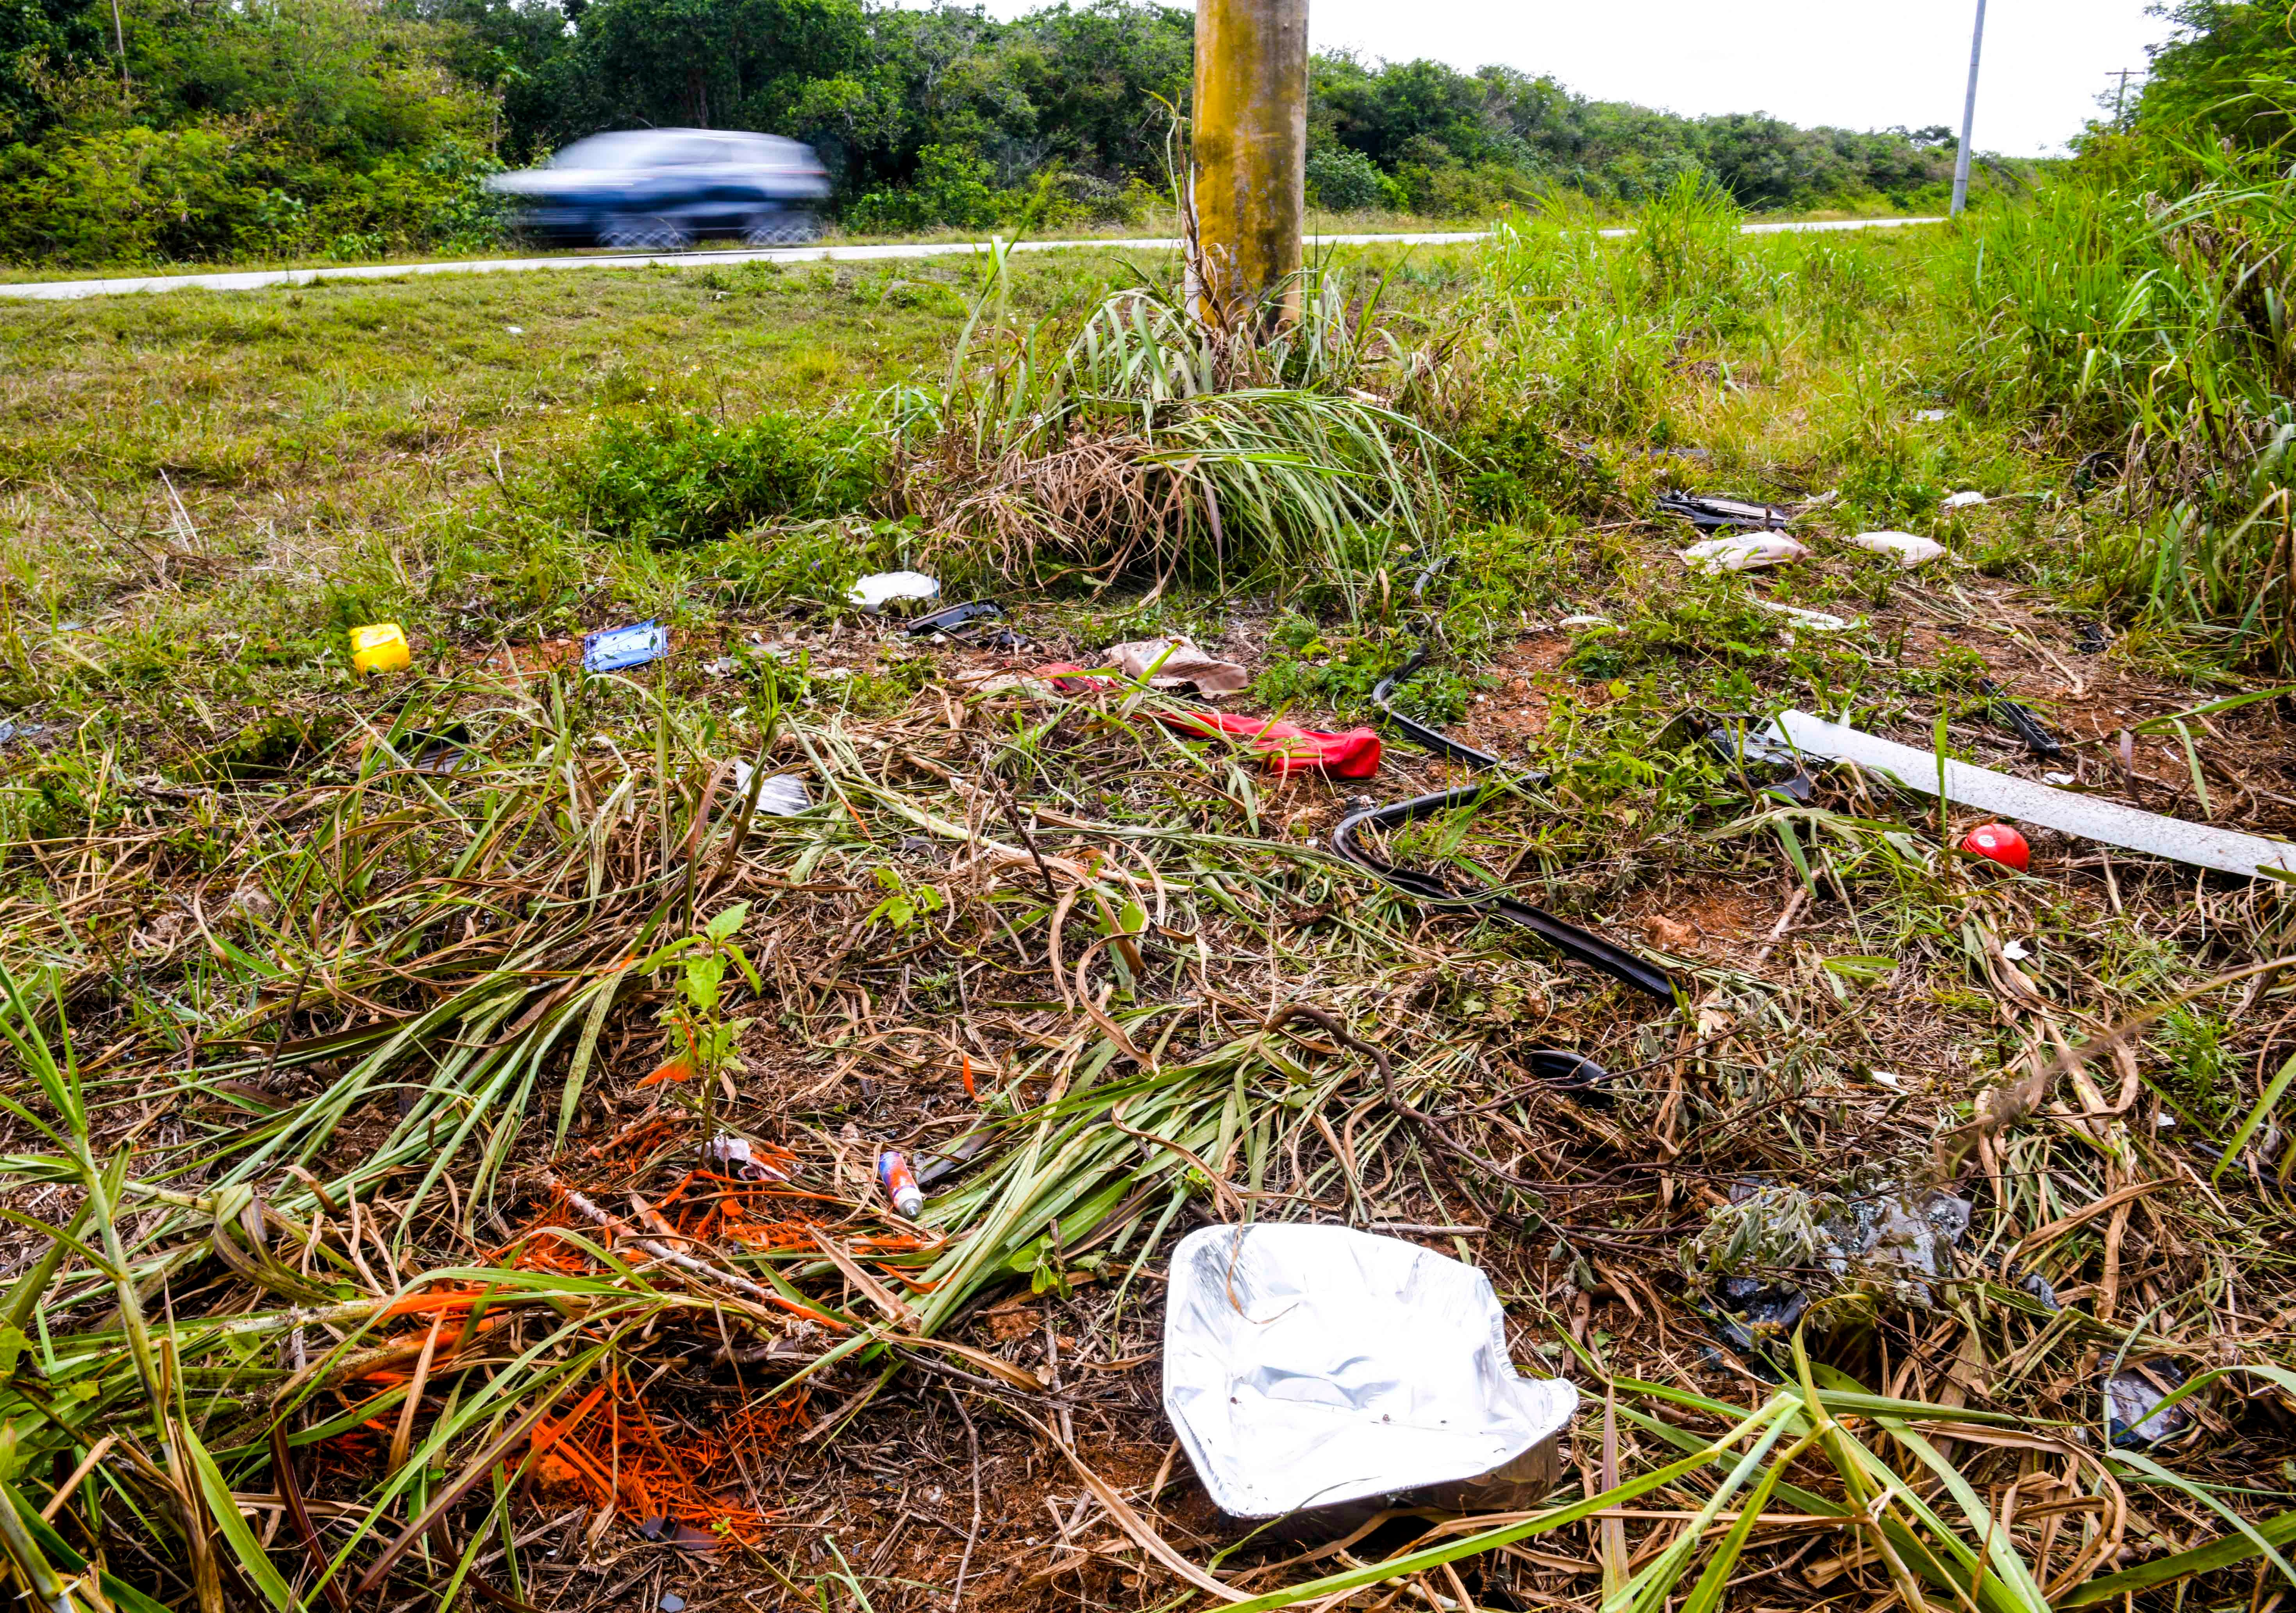 A debris field of car parts, personal items and paint markings left behind by the Guam Police Department's Highway Patrol Division, can be found at the site of a fatal auto-pole collision on Route 15, near the former Andersen South military housing, that claimed the life of a male driver during the early morning hours of Thursday, April 9, 2020.